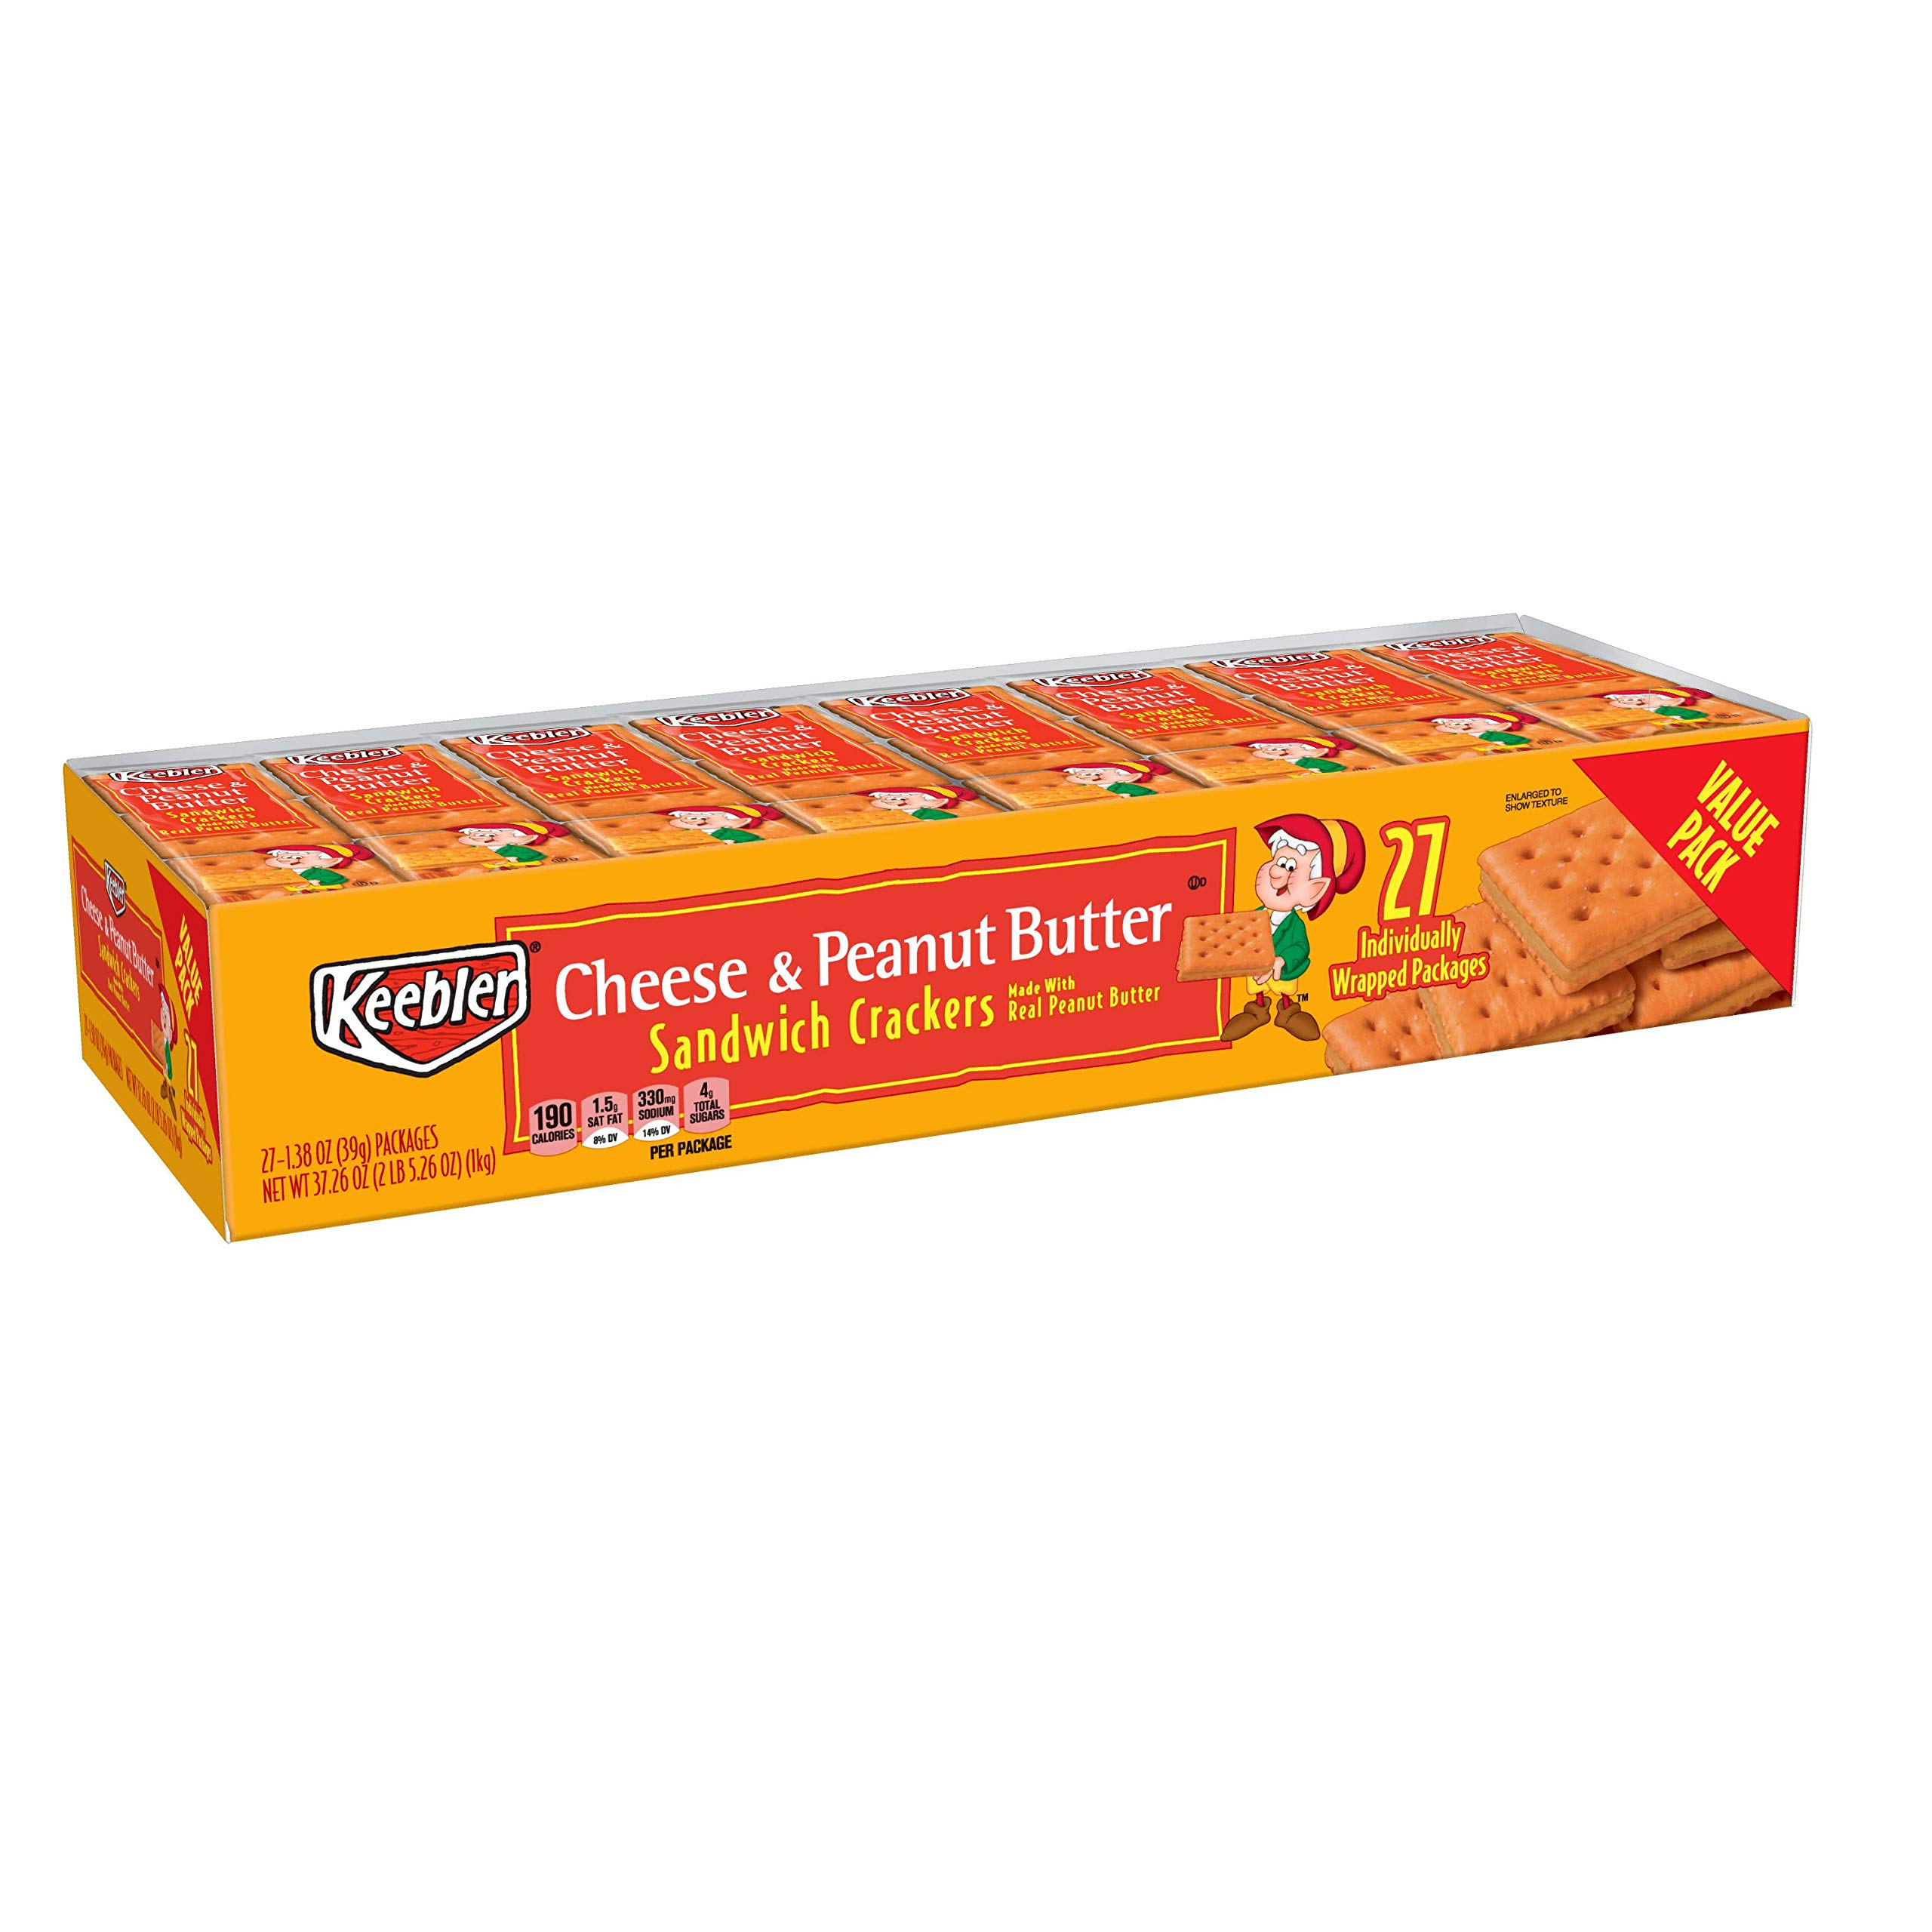 Keebler Value Pack Cheese and Peanut Butter Sandwich Crackers, 4 Count